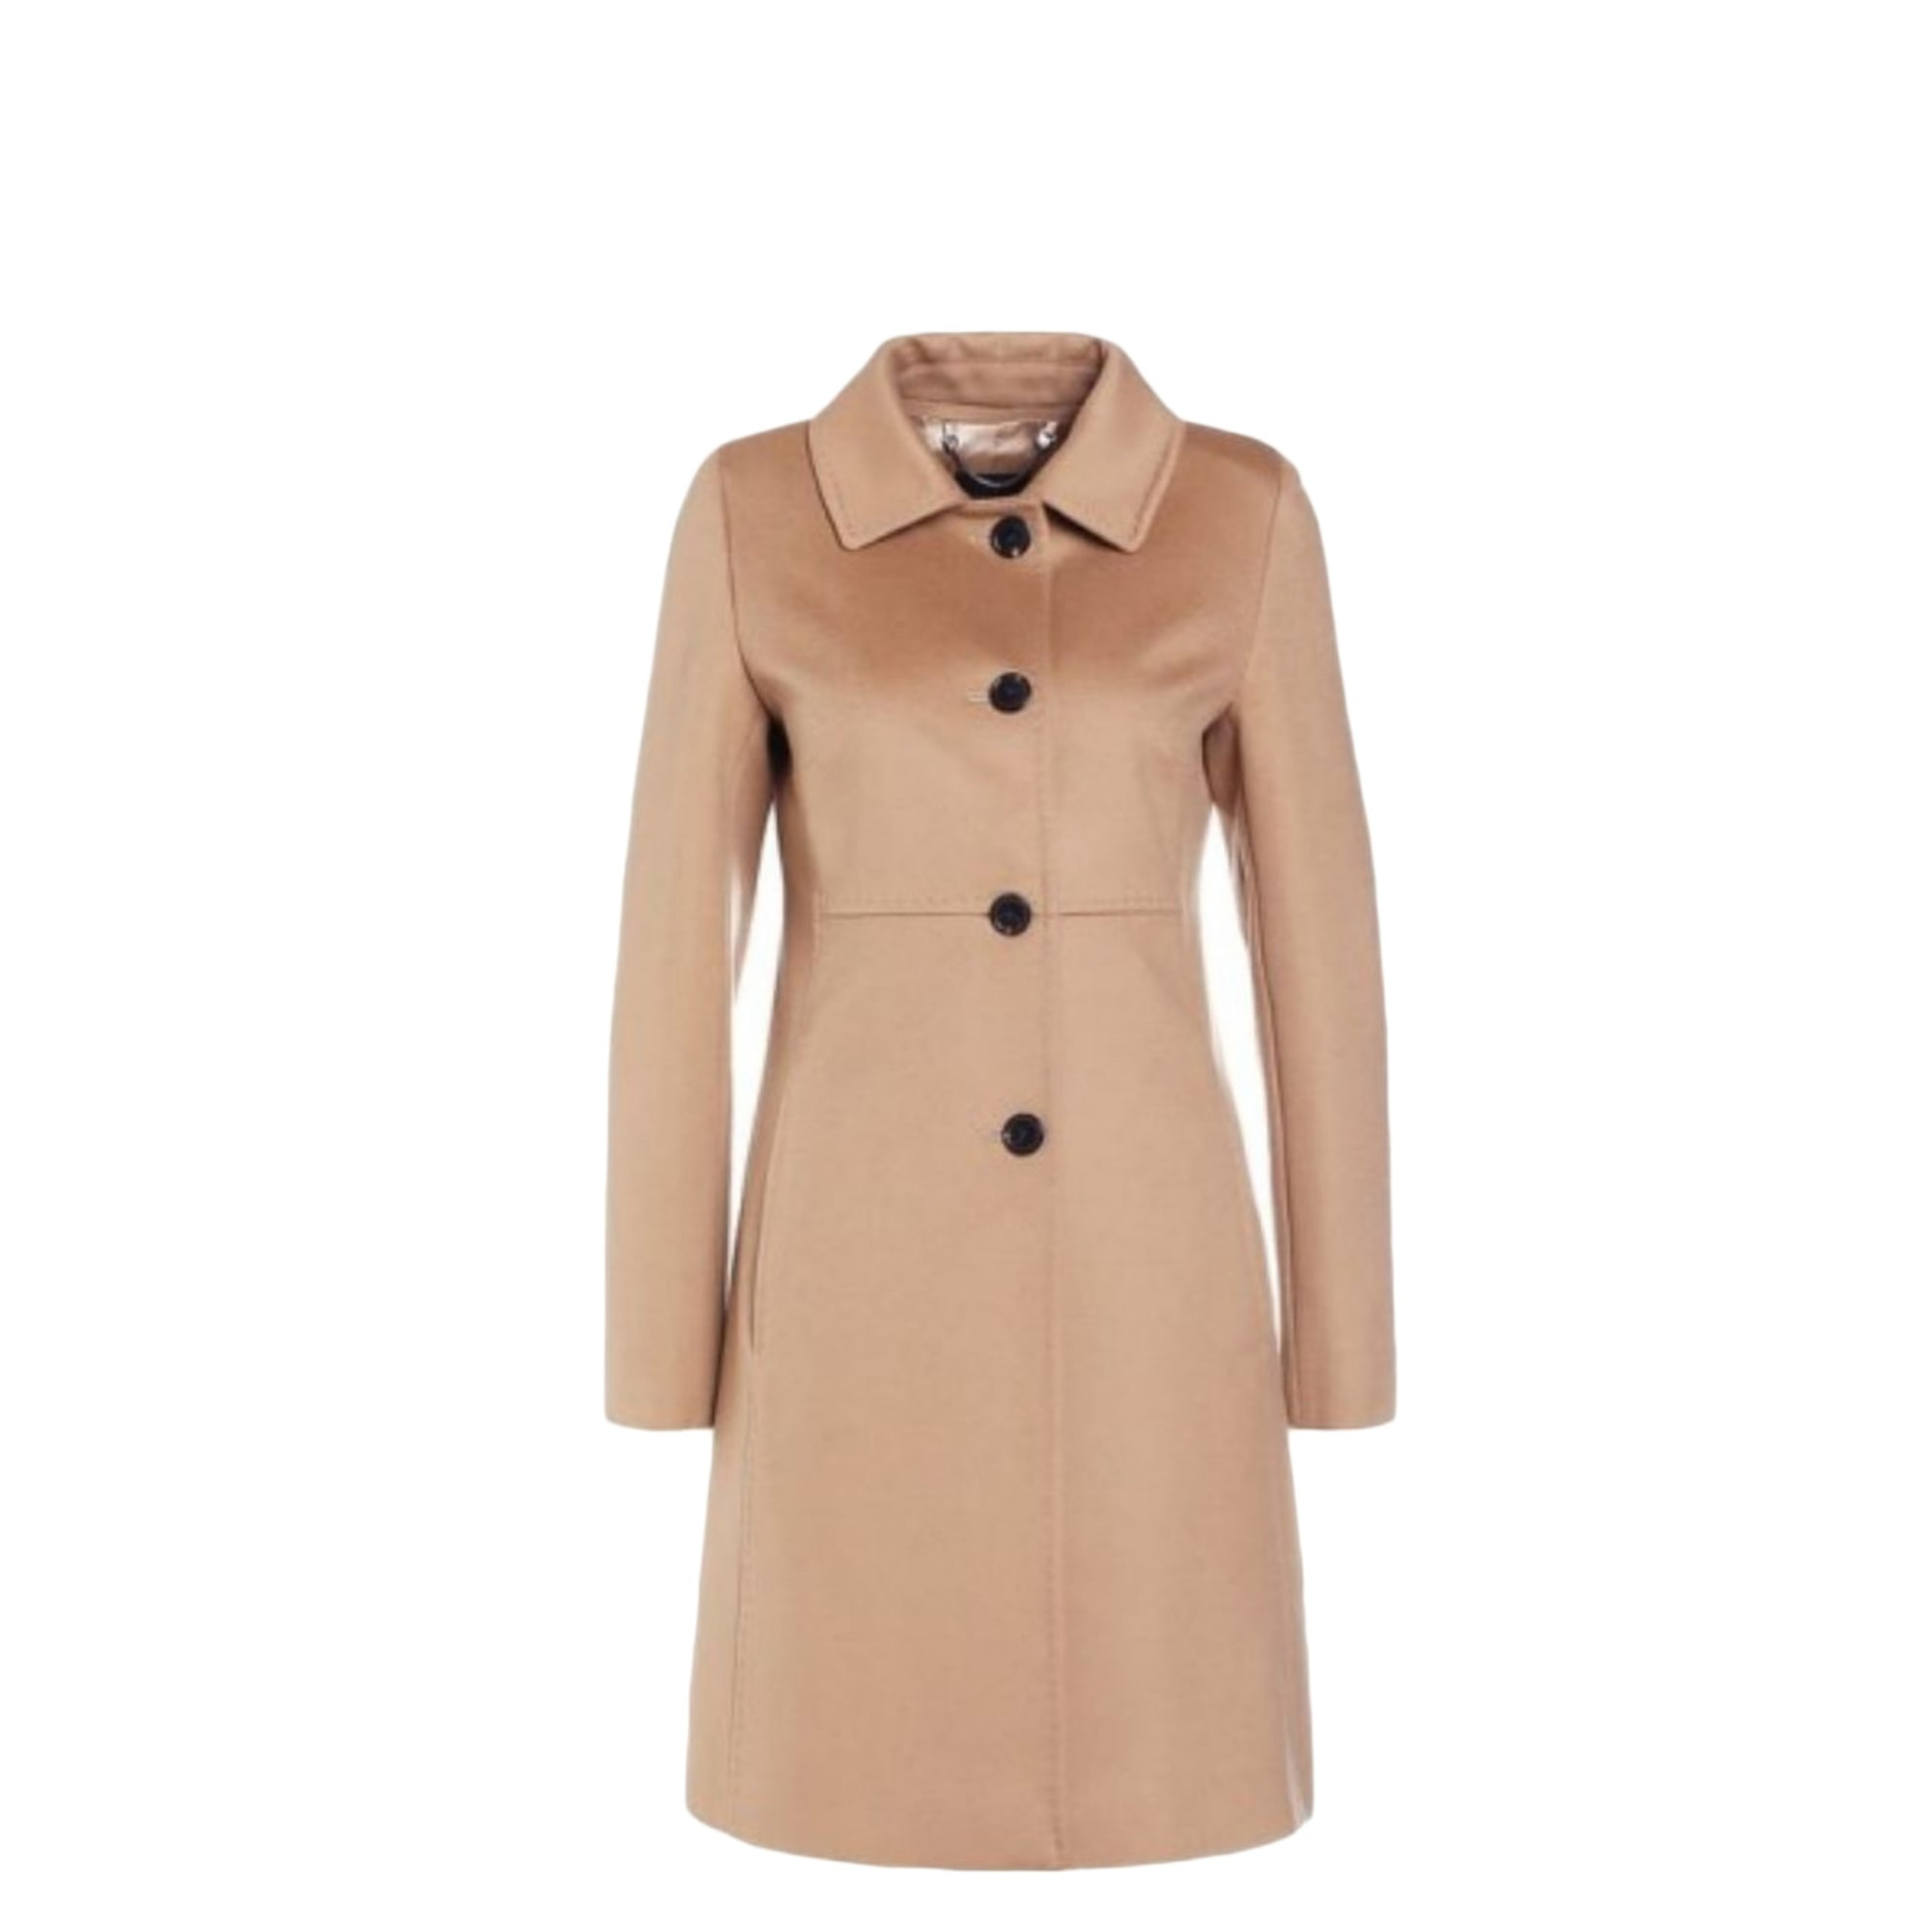 Manteau WEEKEND MAX MARA Beige, camel